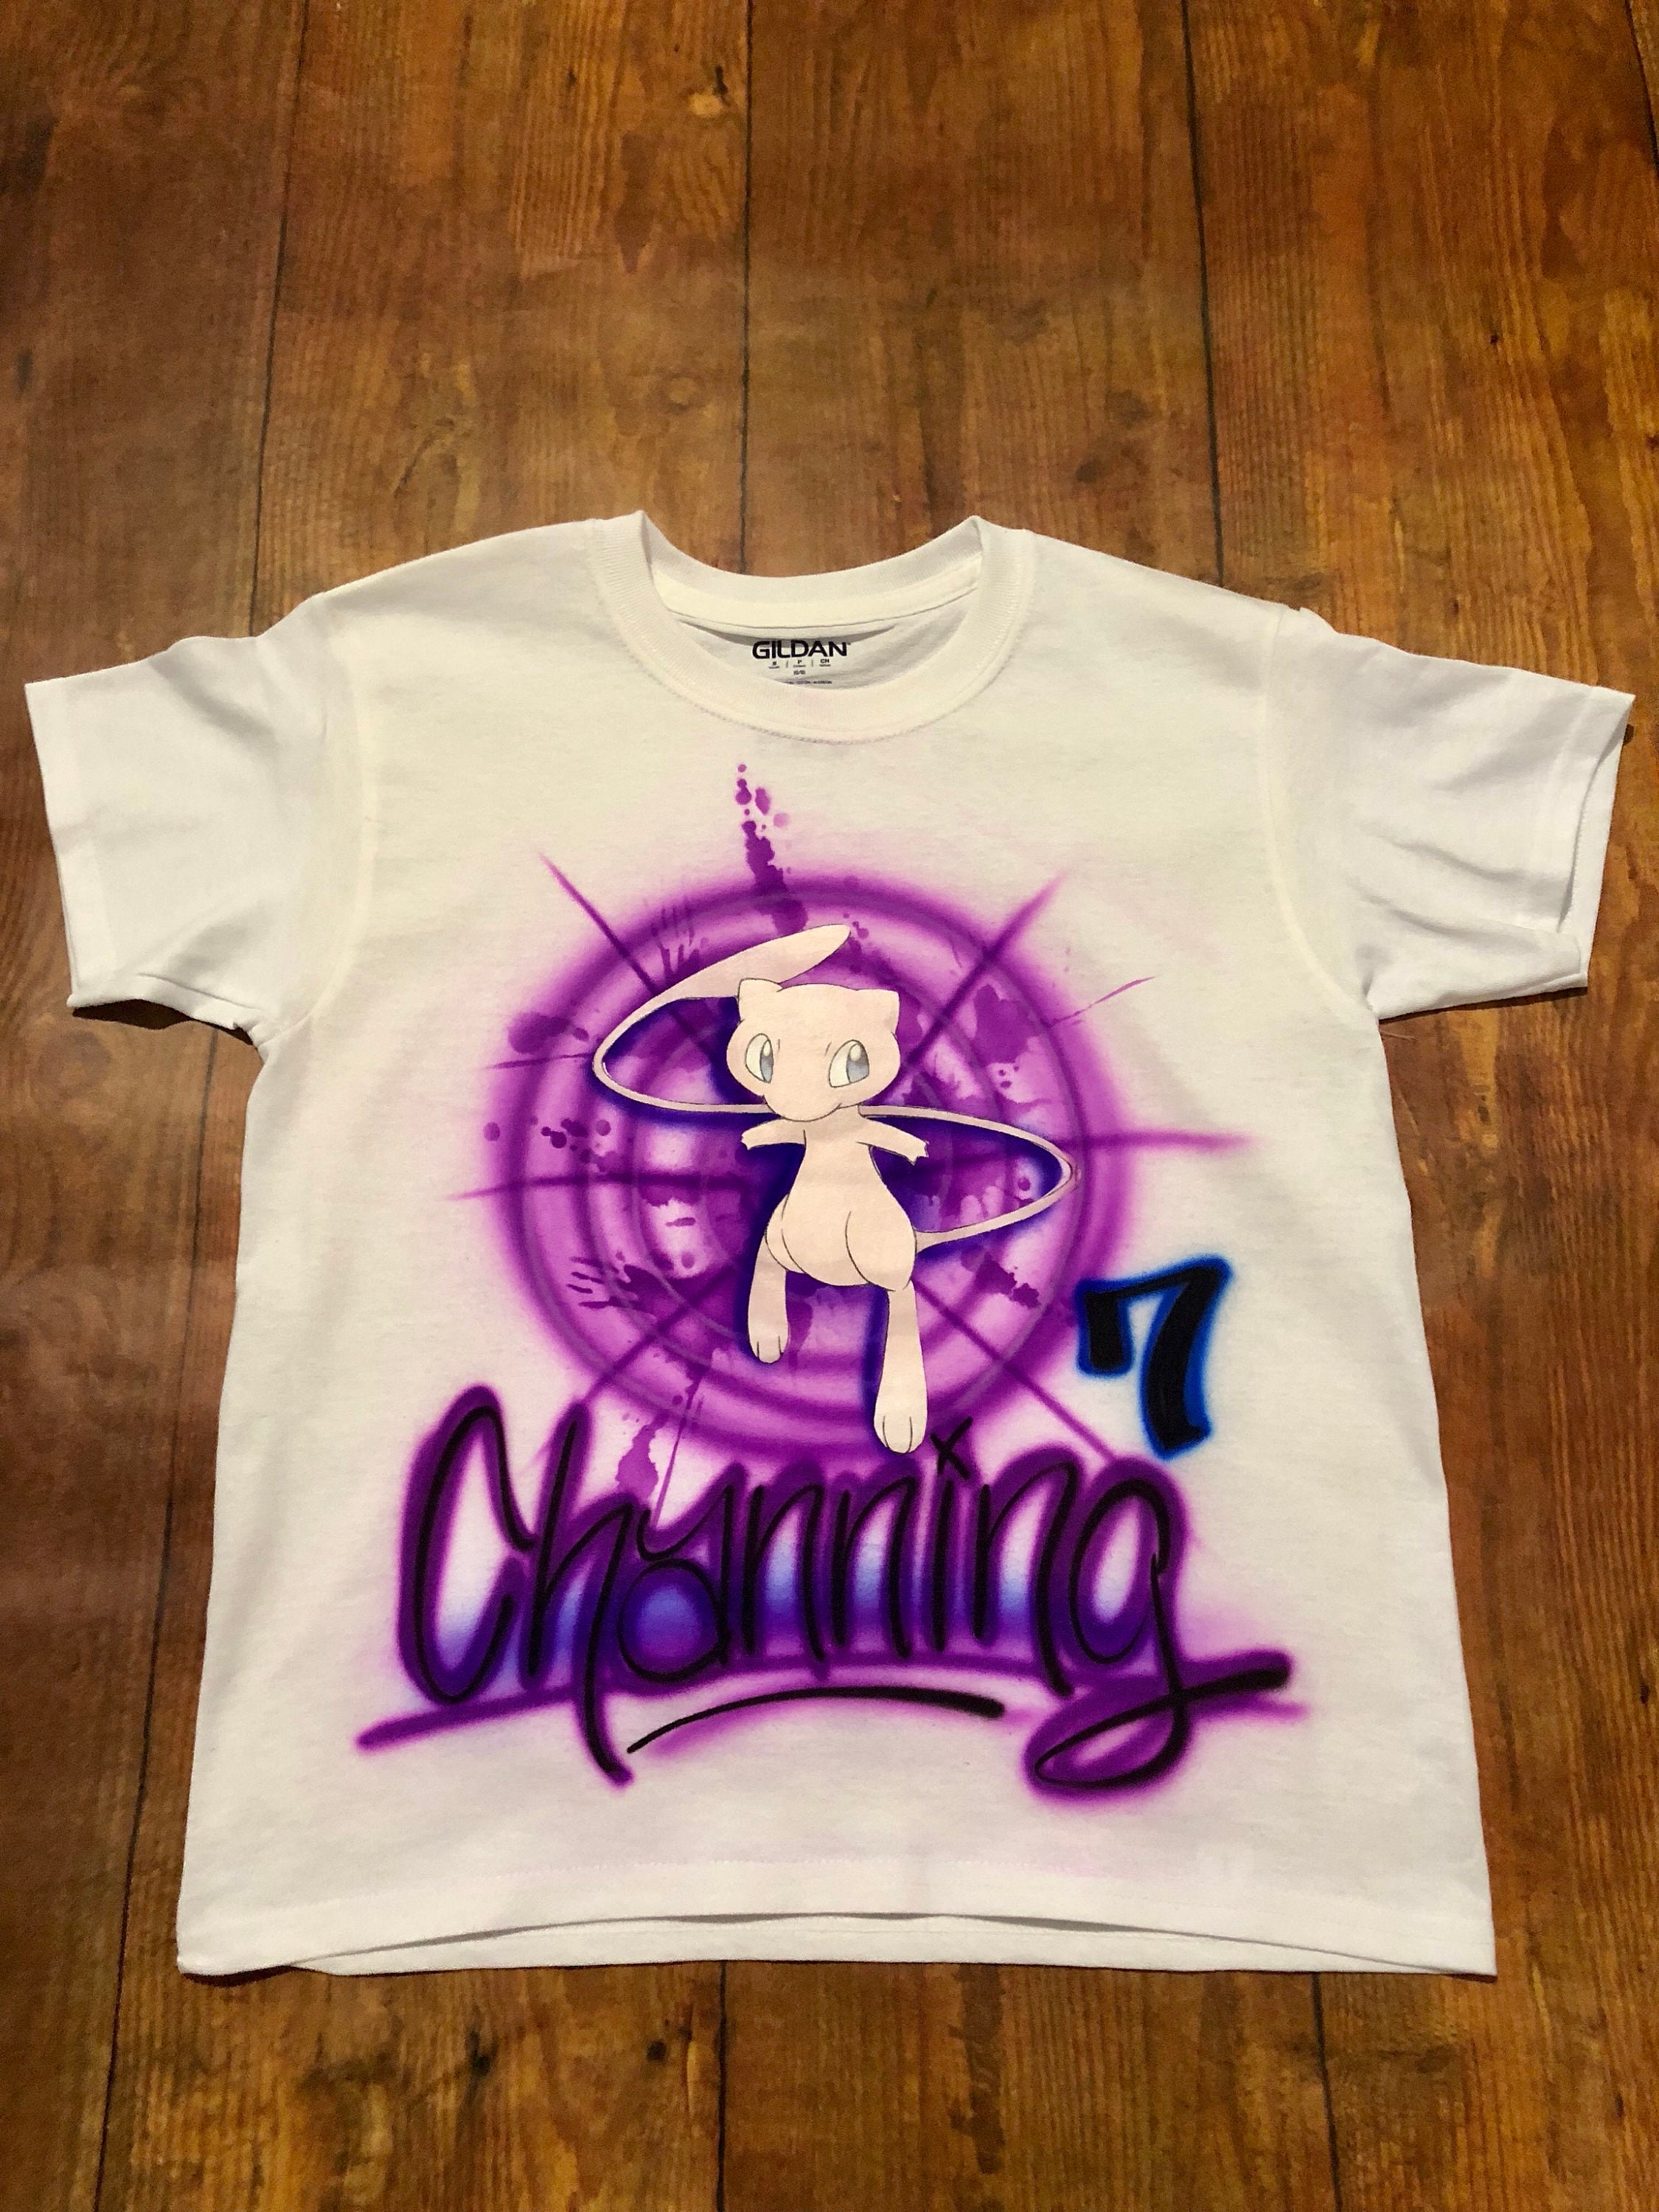 Customized Airbrush Shirts Philippines Bcd Tofu House